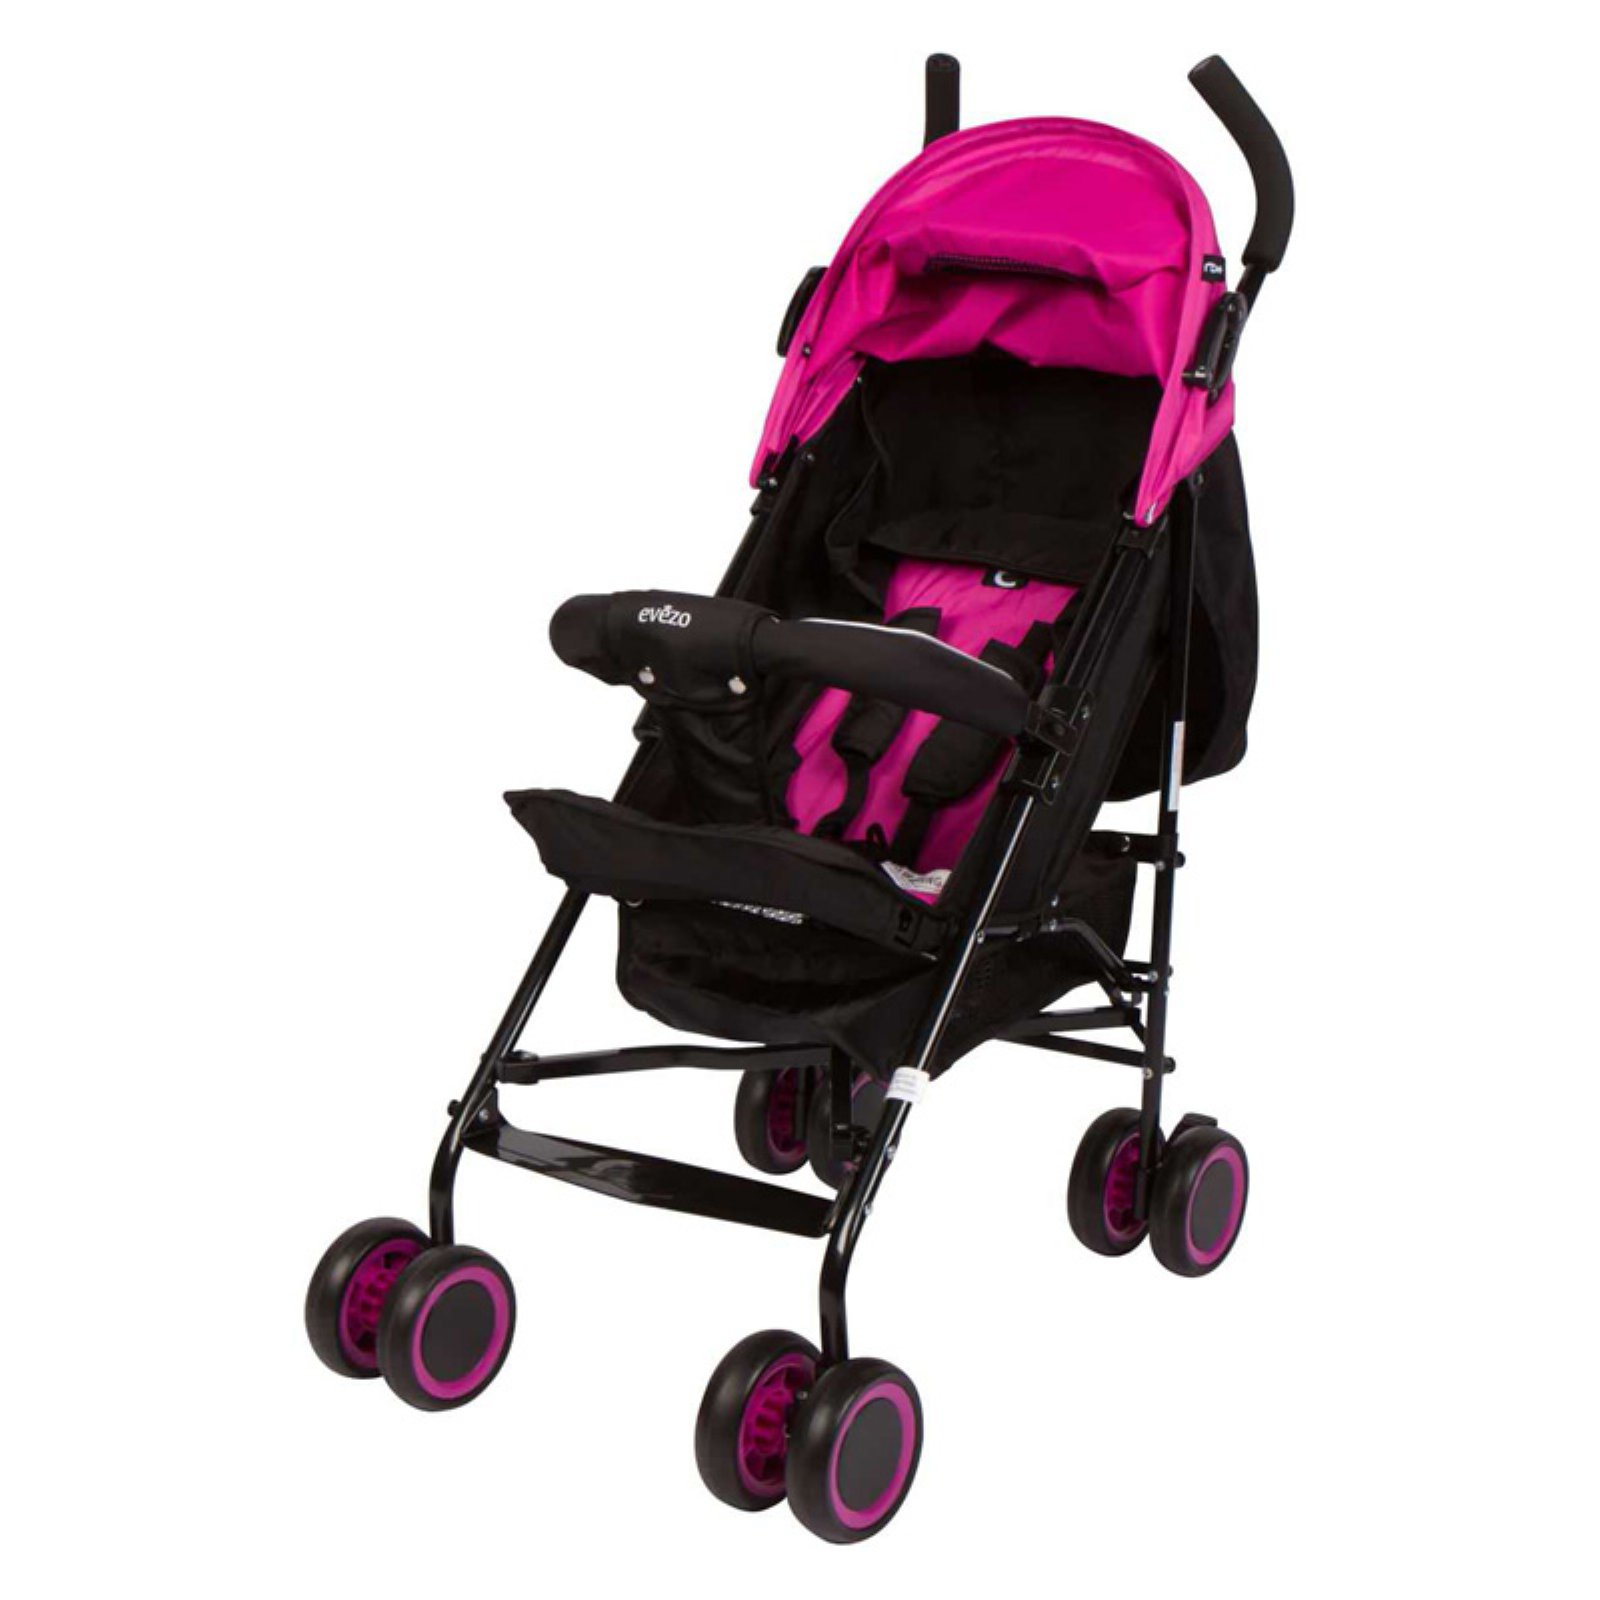 Evezo Lightweight Adjustable Baby Stroller - Pink